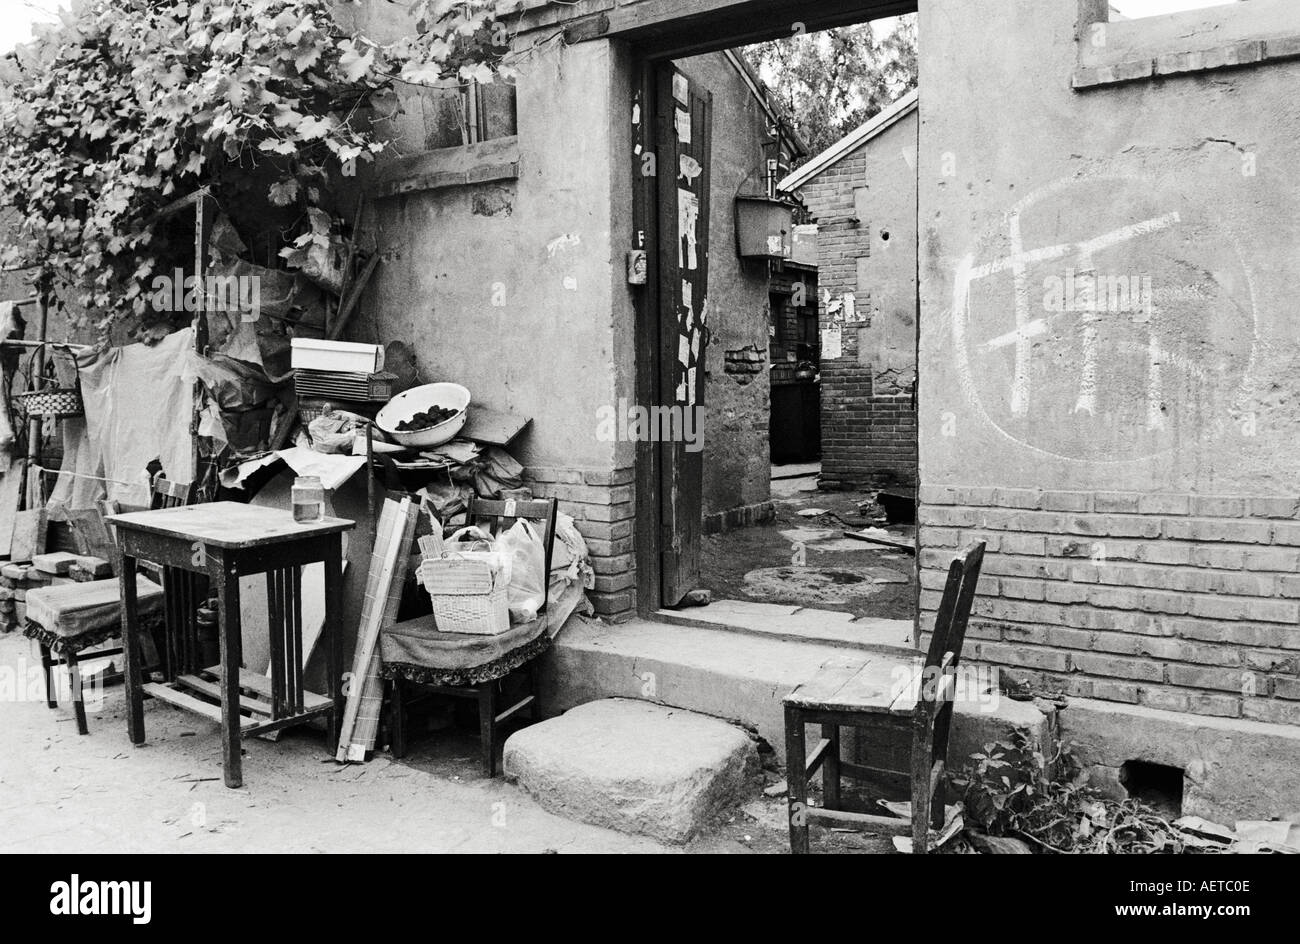 Furniture Waiting For Removal Outside A Condemned Hutong Home In Beijing  2003